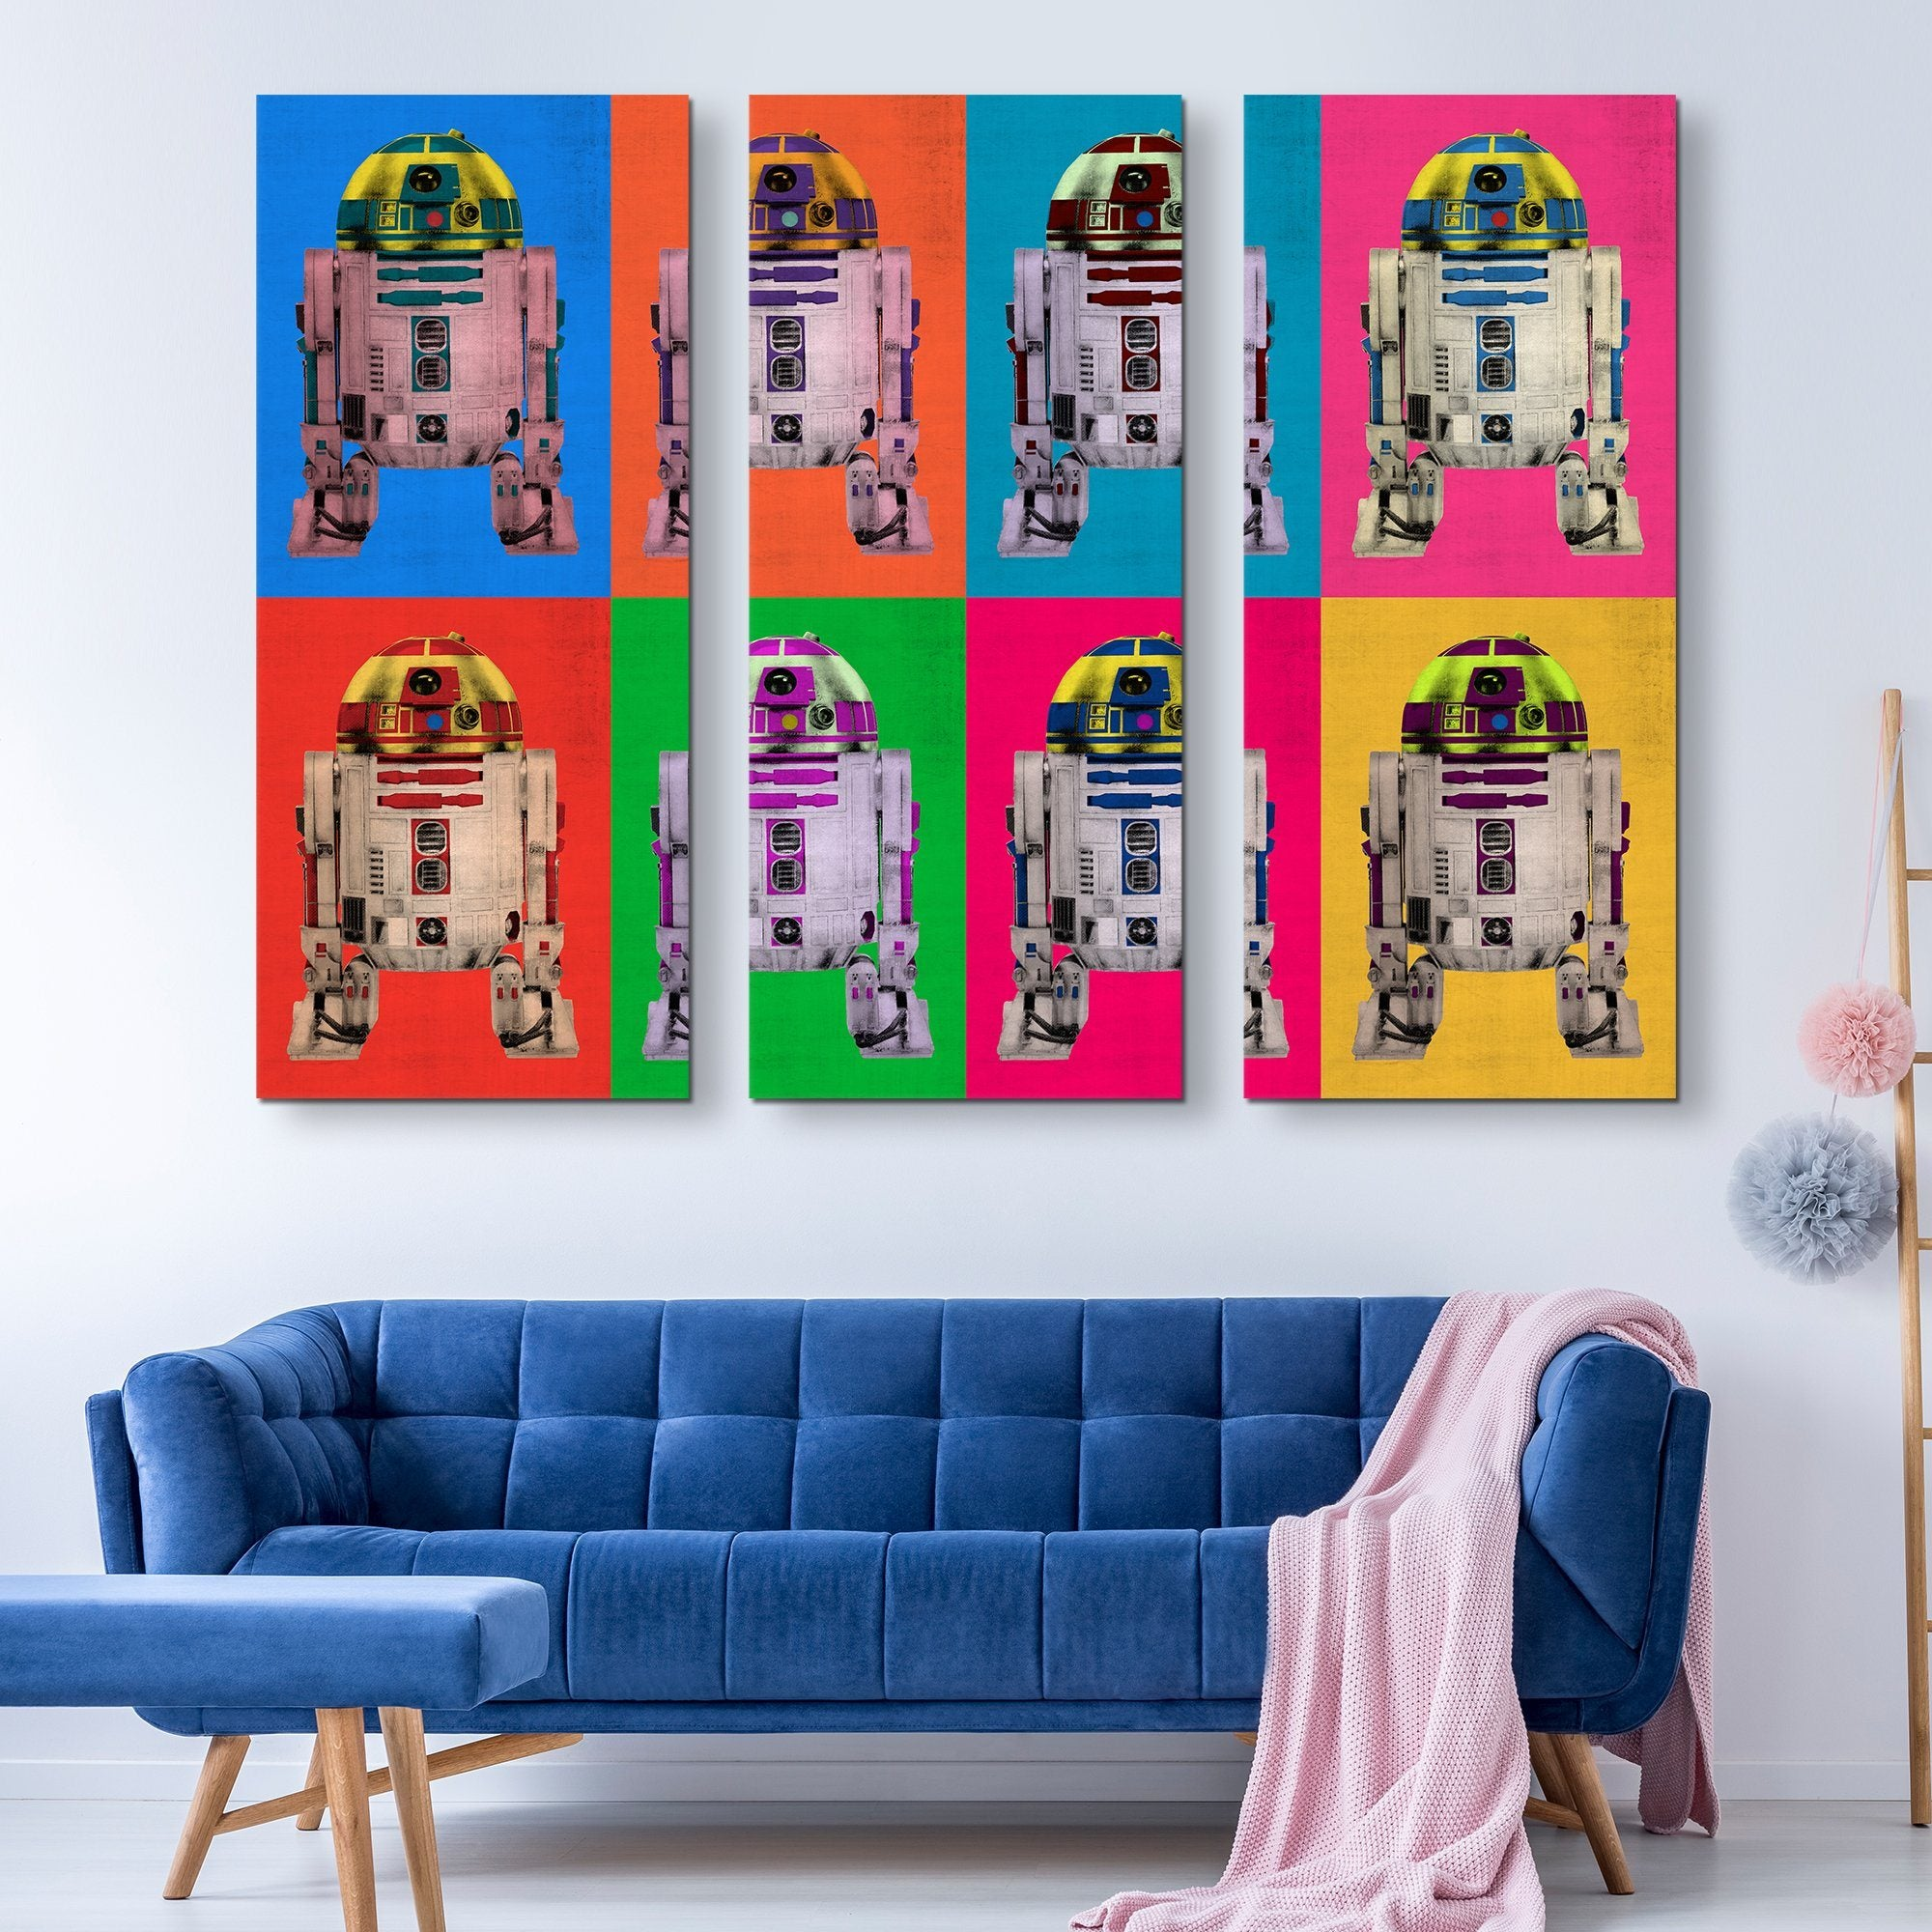 3 piece r2D2 Droid wall art